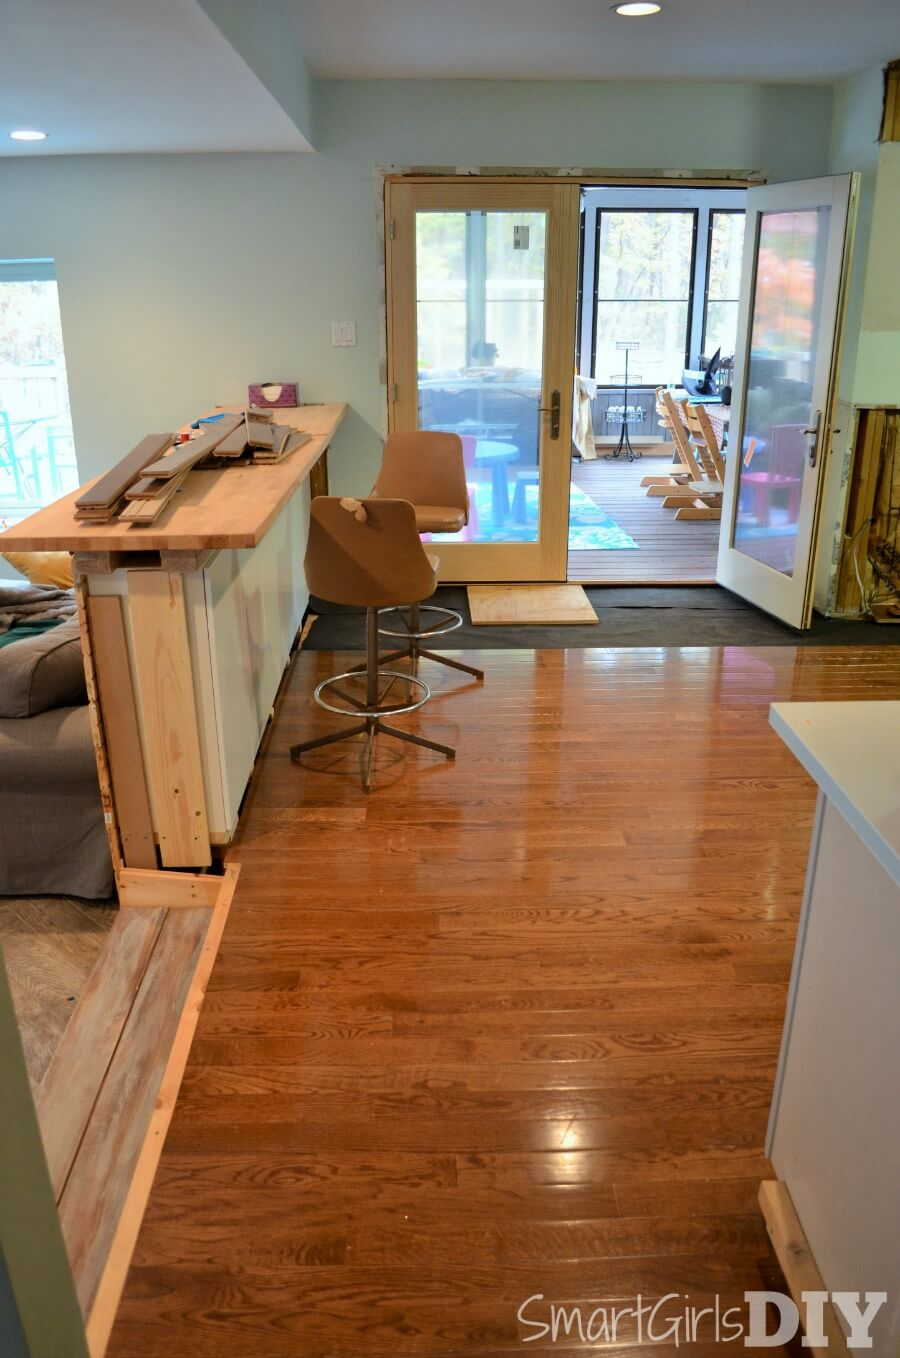 Hardwood floor install in kitchen not finished before party